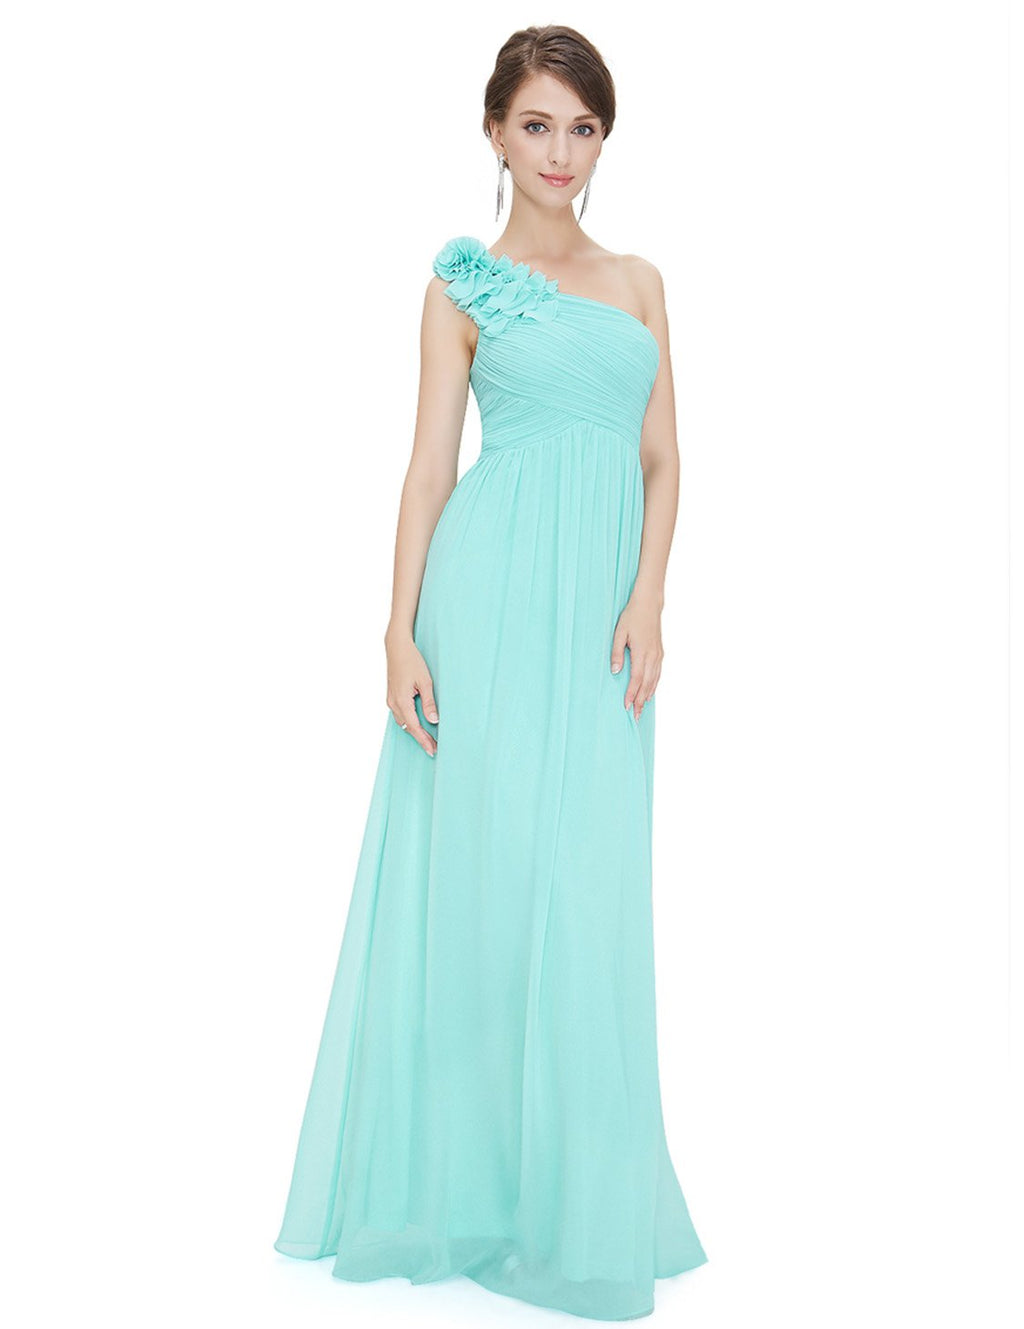 Floral Shoulder One Shoulder Evening Dress Aqua